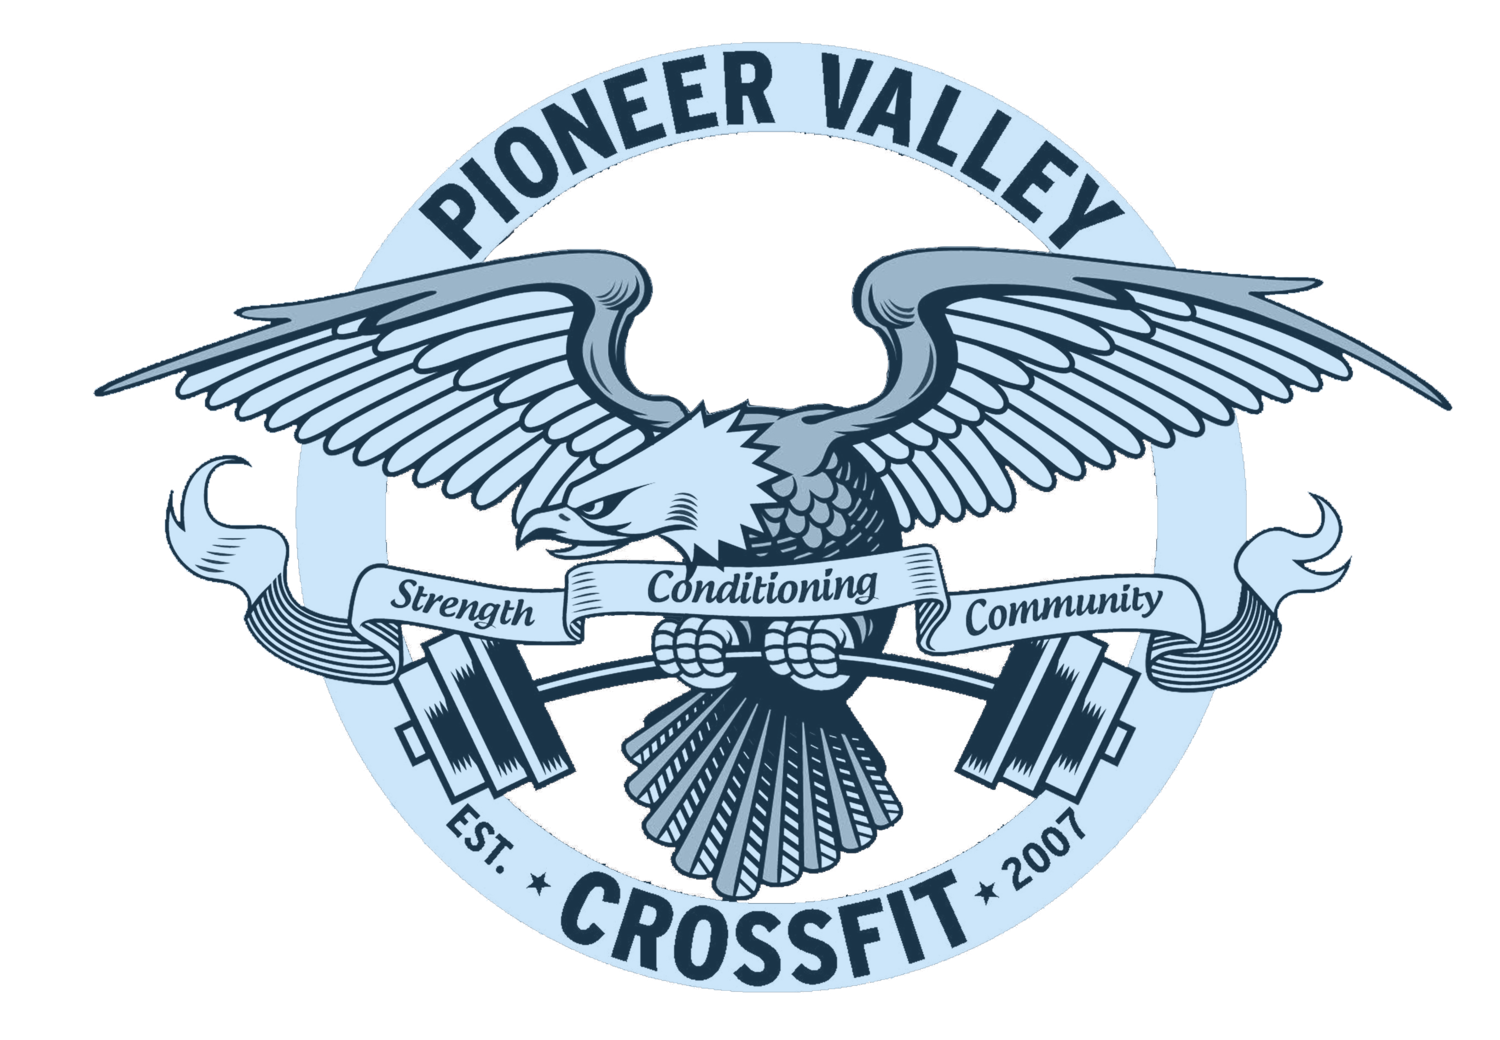 Pioneer Valley CrossFit